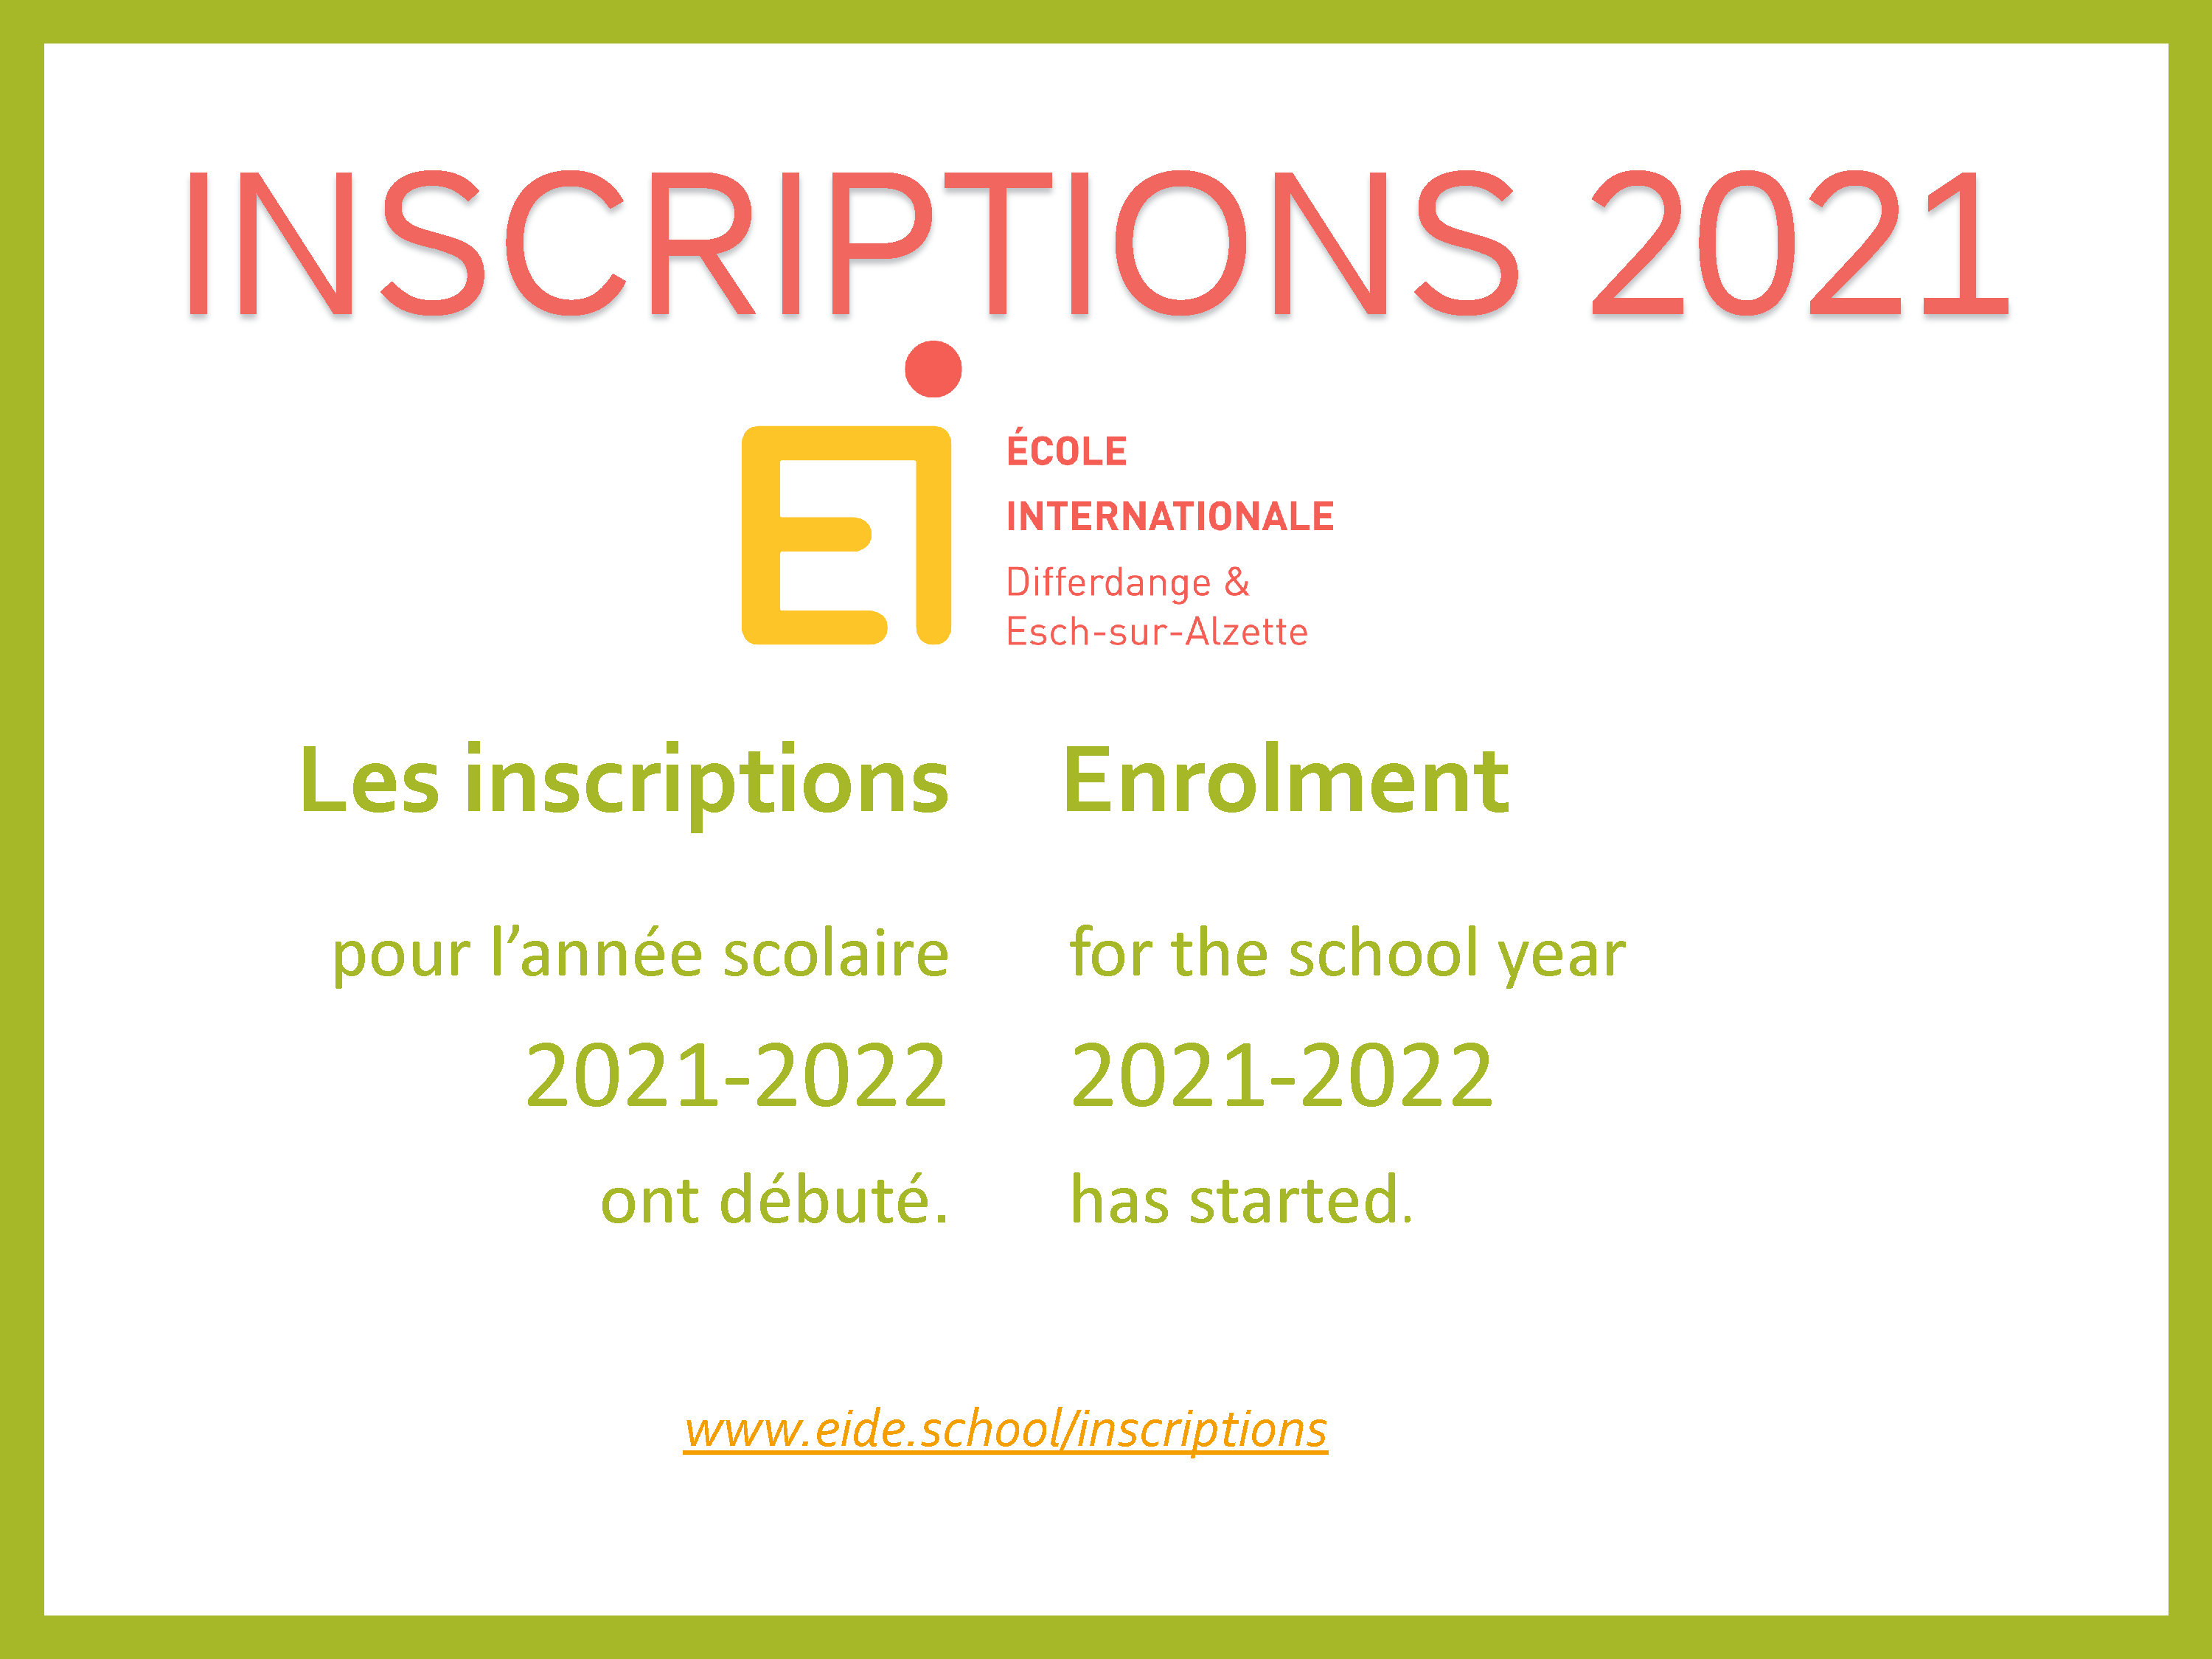 Inscriptions 2021a Homepage